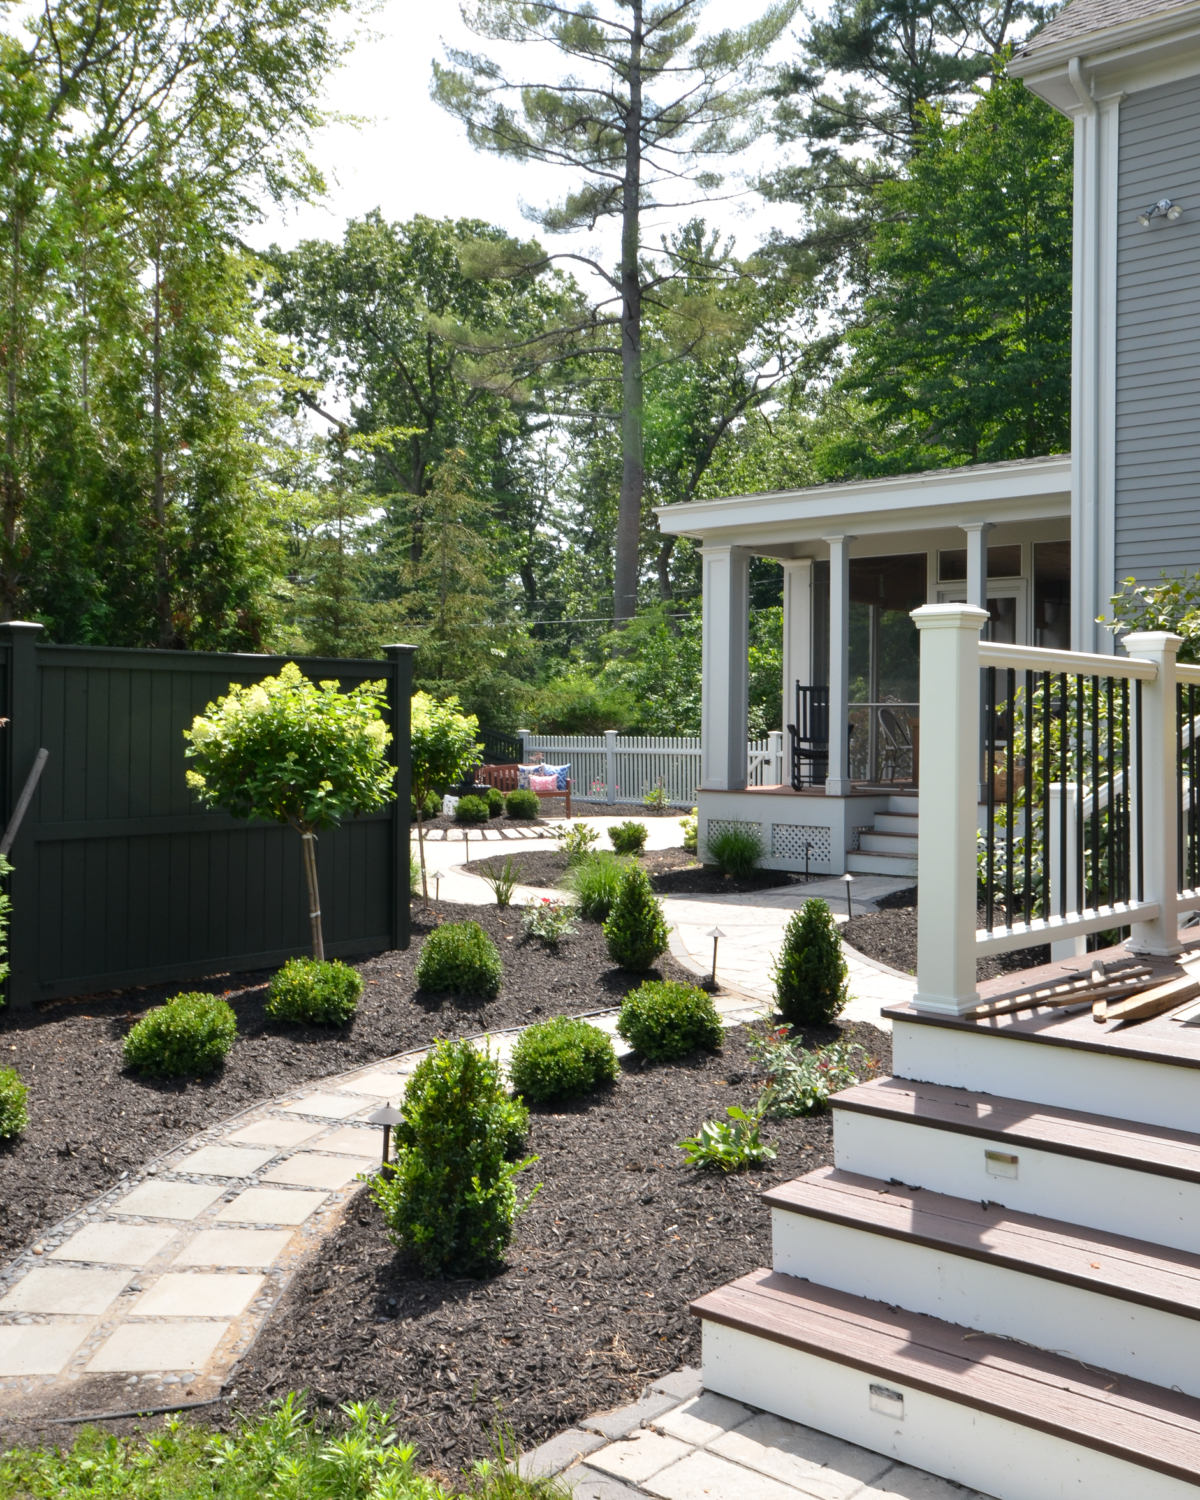 Custom paver patio with a fountain at the center, classic outdoor living space ideas for decorating your deck or patio